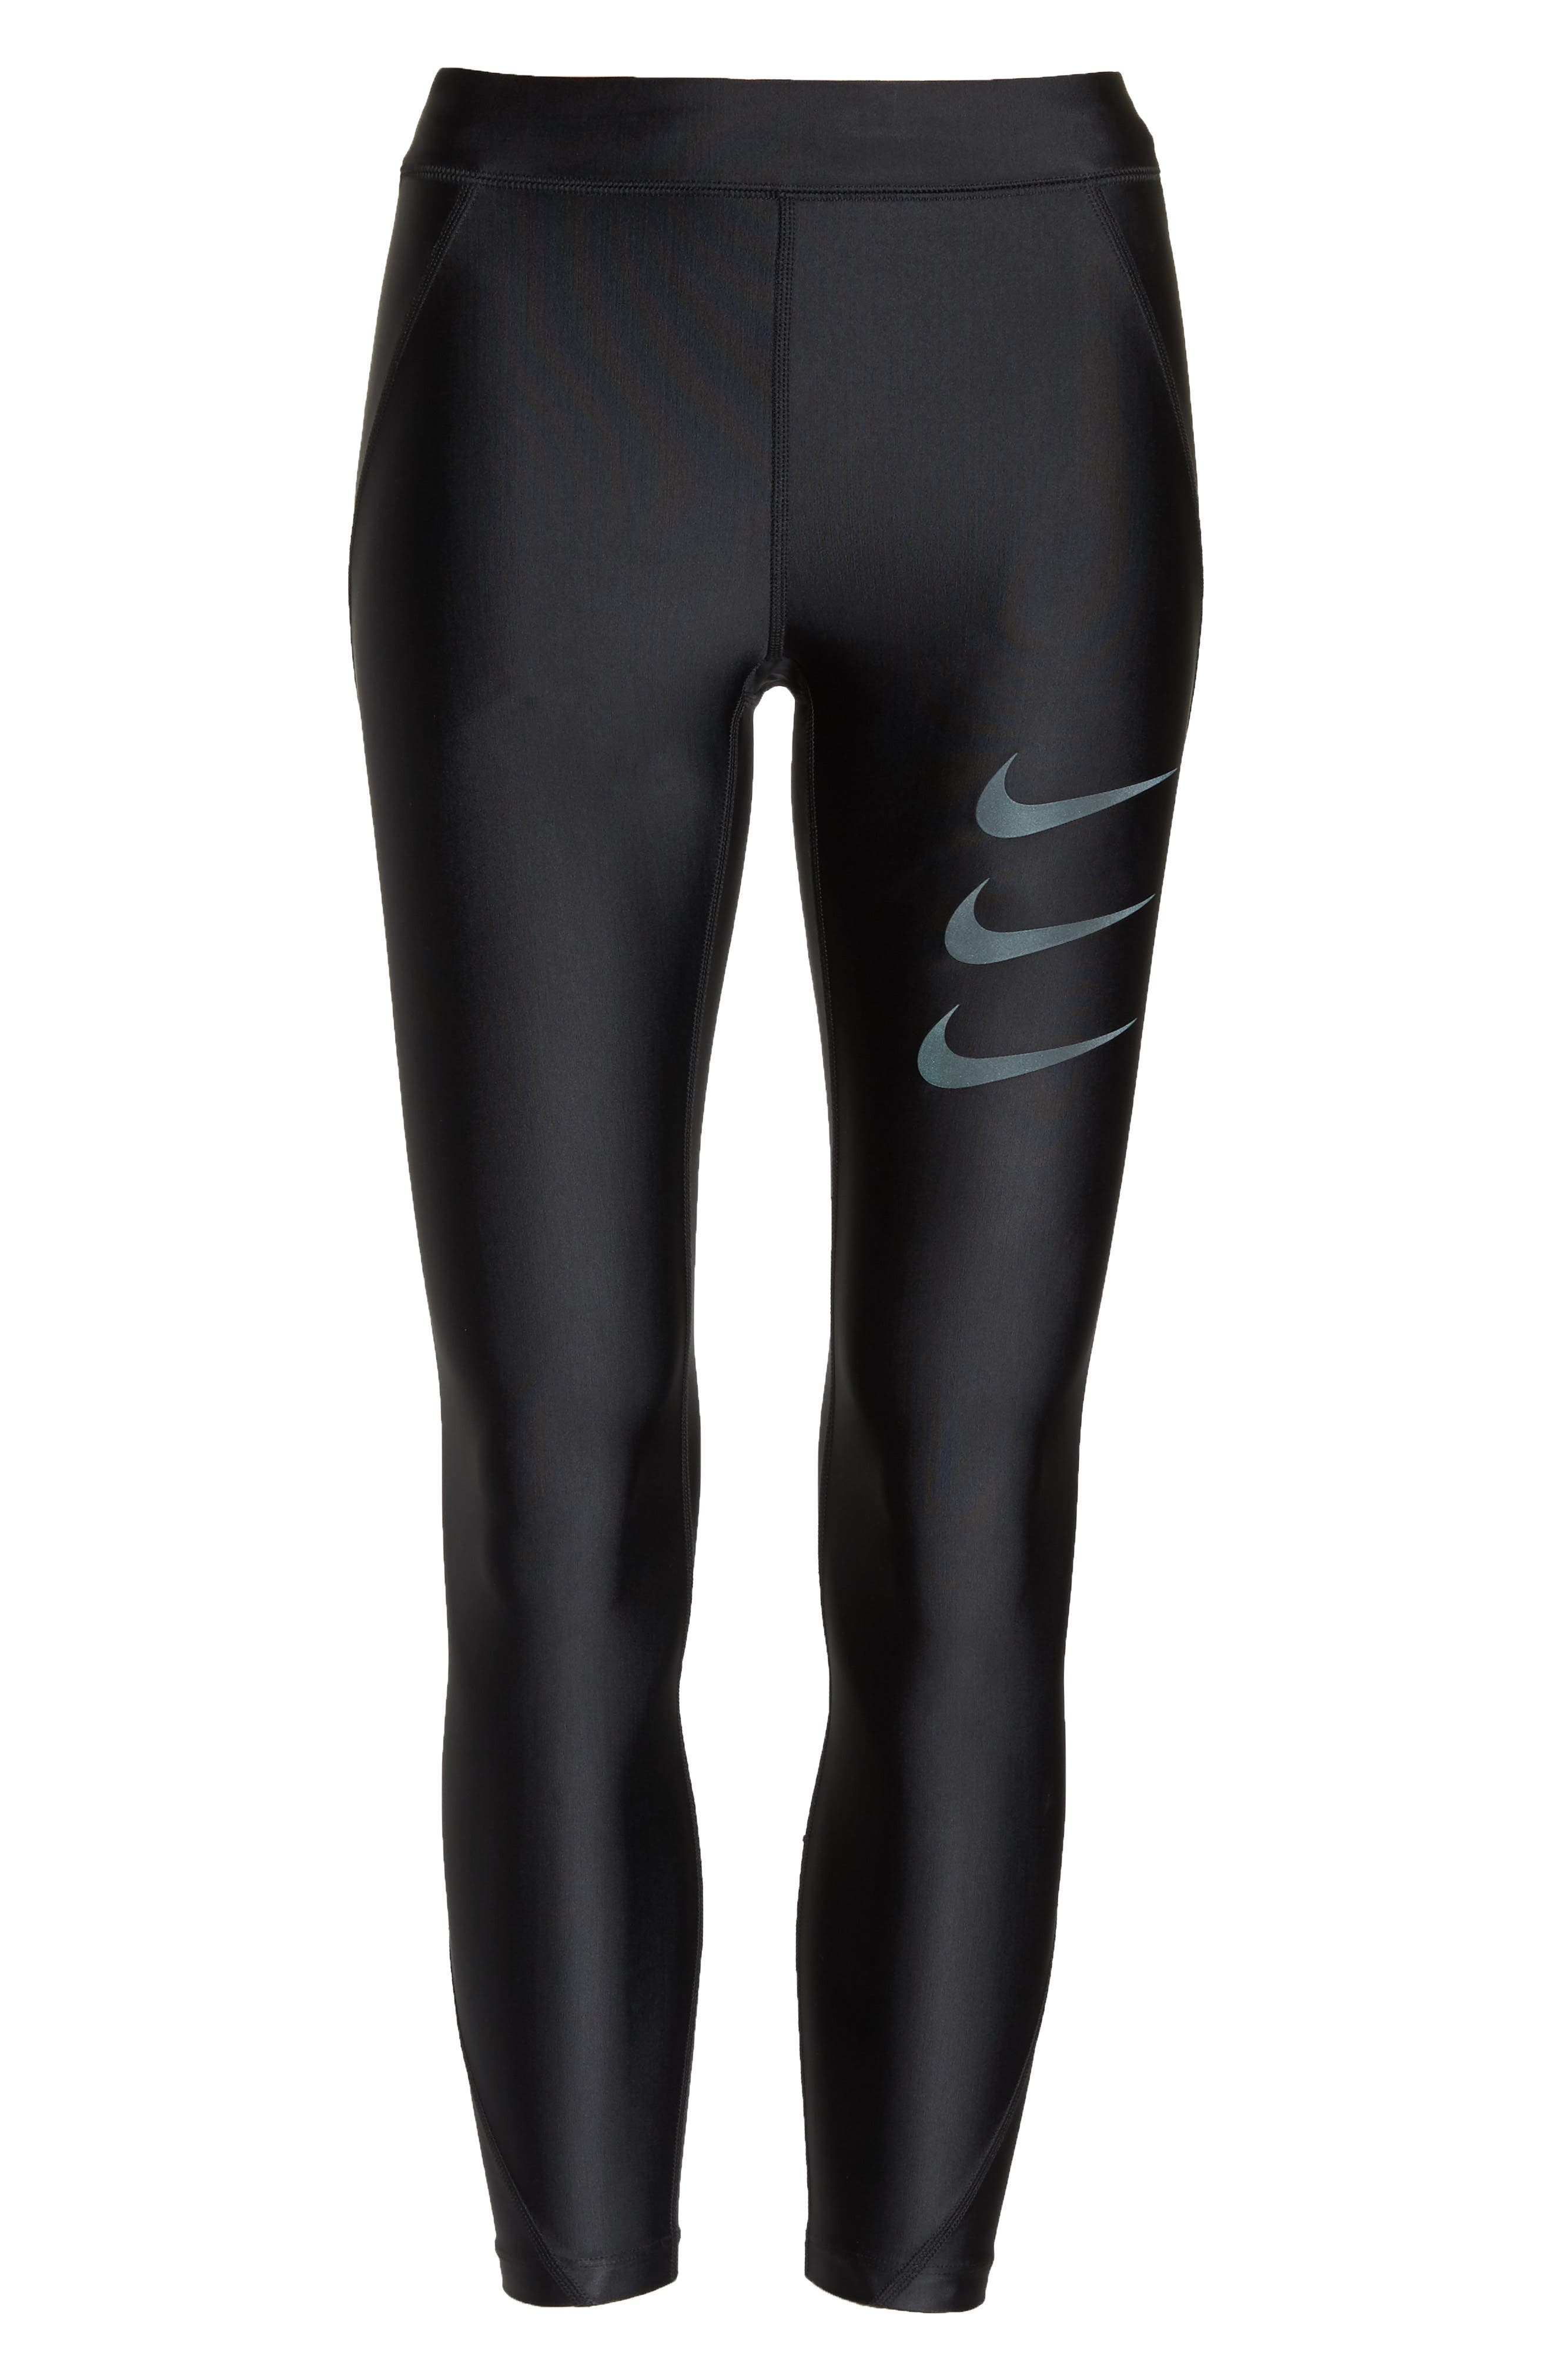 Speed Women's Running Tights,                         Main,                         color, 010